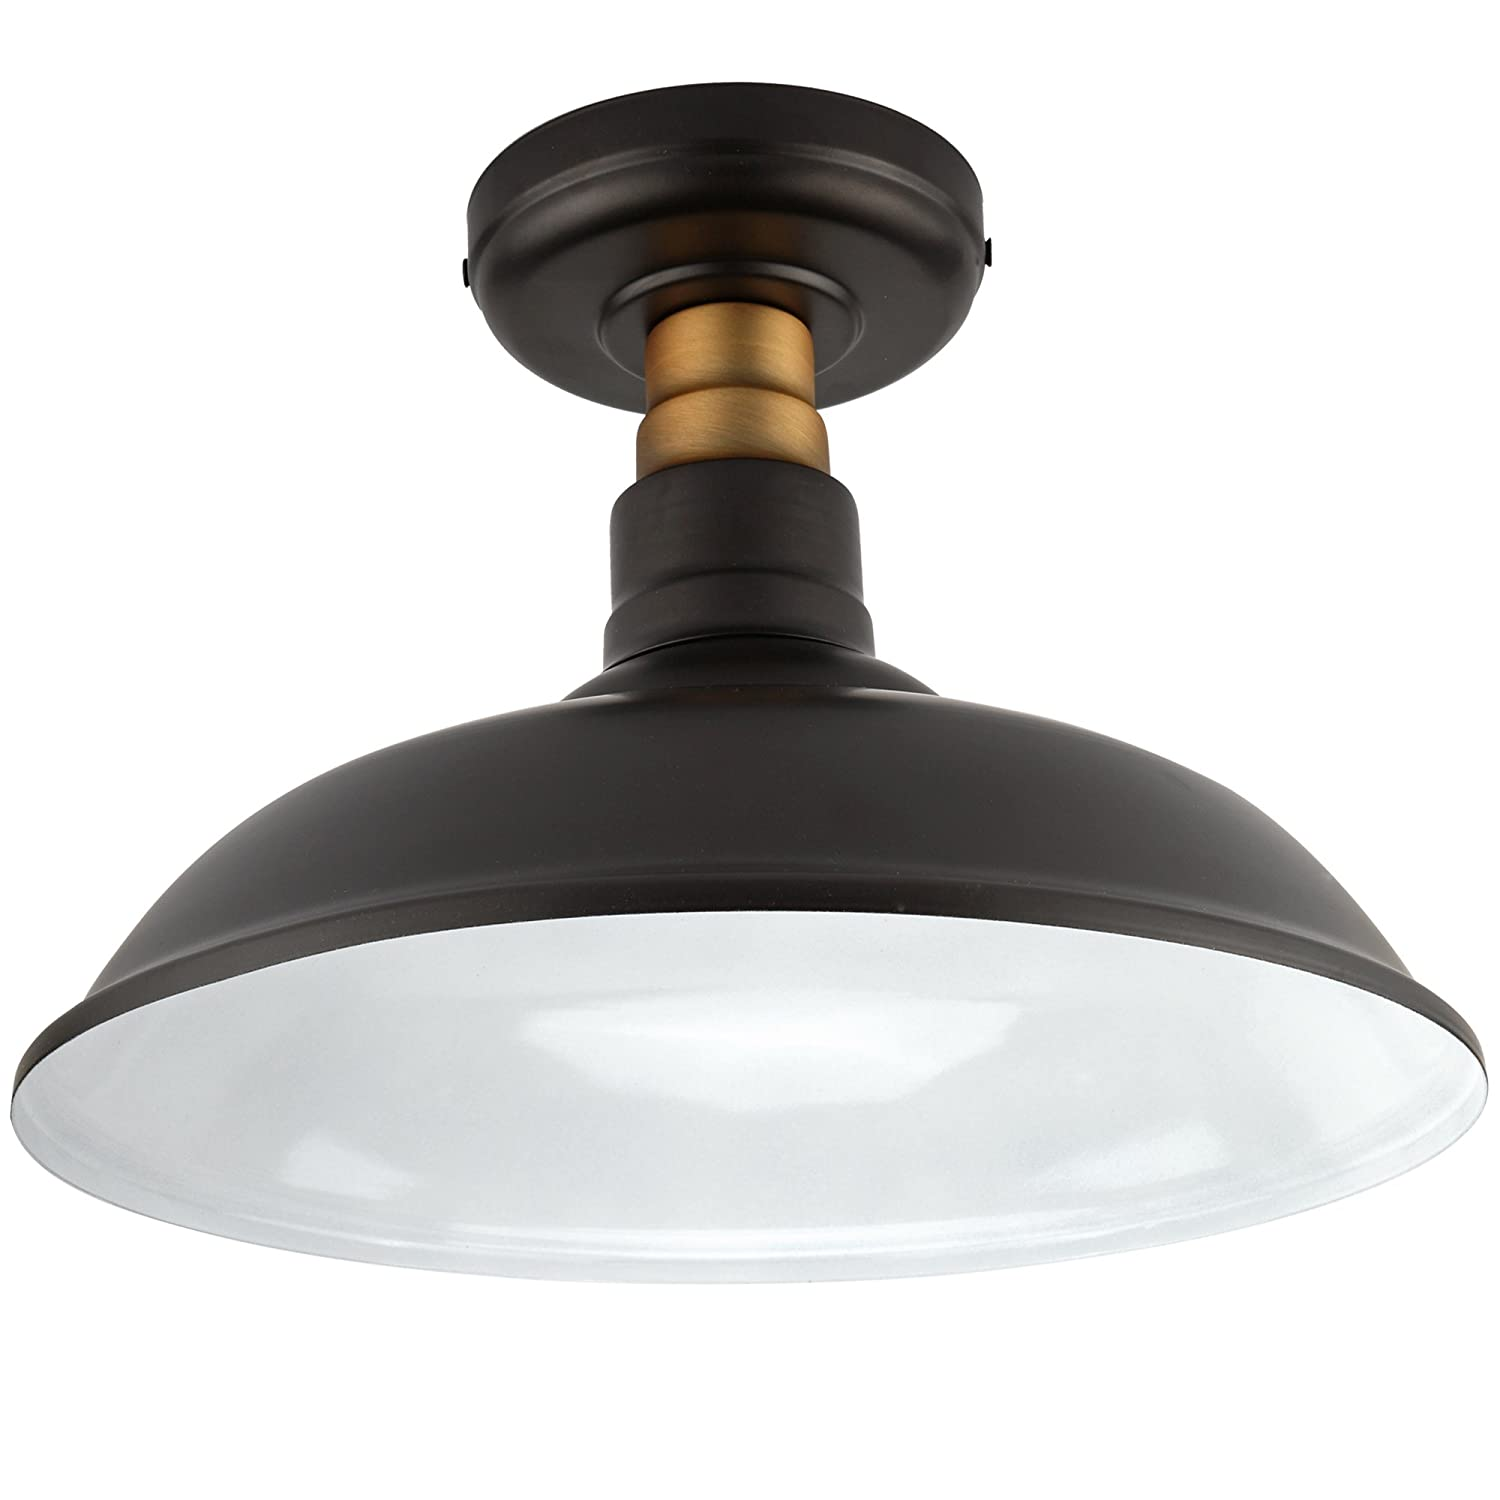 Vintage Semi Flush Mount Ceiling Light, Oil Rubbed Bronze/Antique Brass Finish,Industrial Ceiling Lamp Fixture Suitable for Bedroom Living Room Hallway,E26 Medium Base